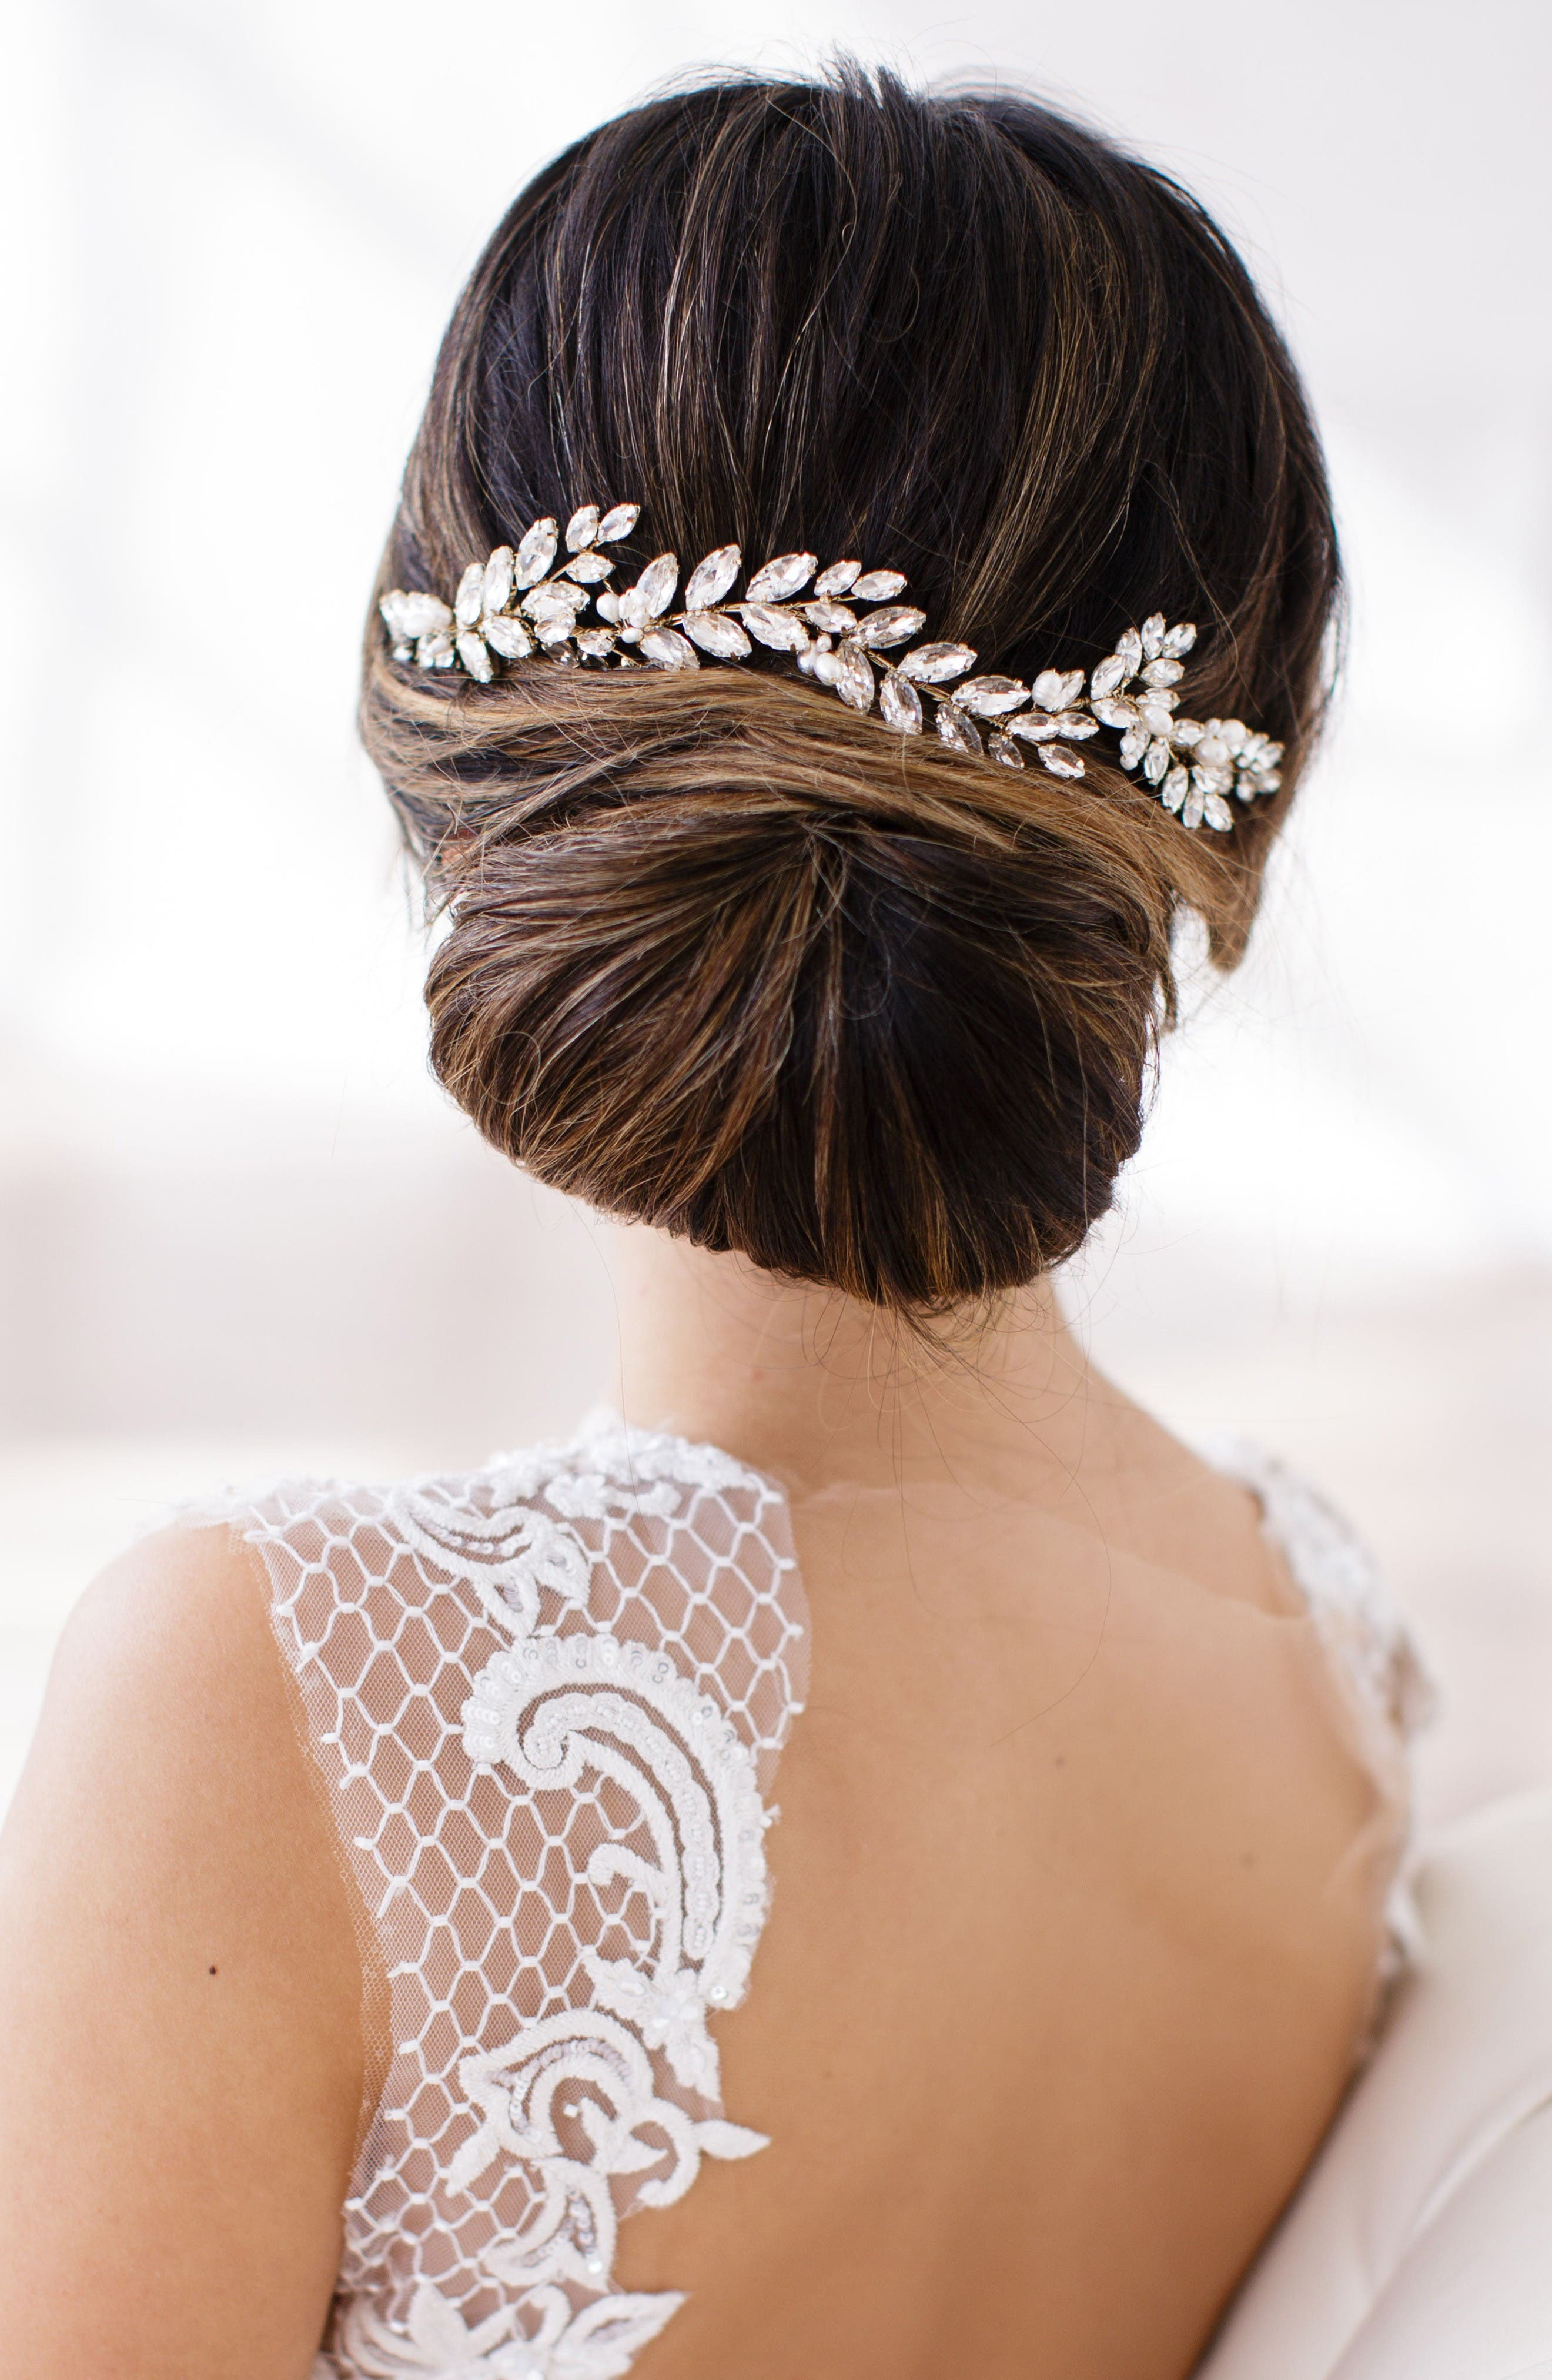 Alternate Image 1 Selected - Brides & Hairpins Abrielle Crystal & Pearl Headpiece